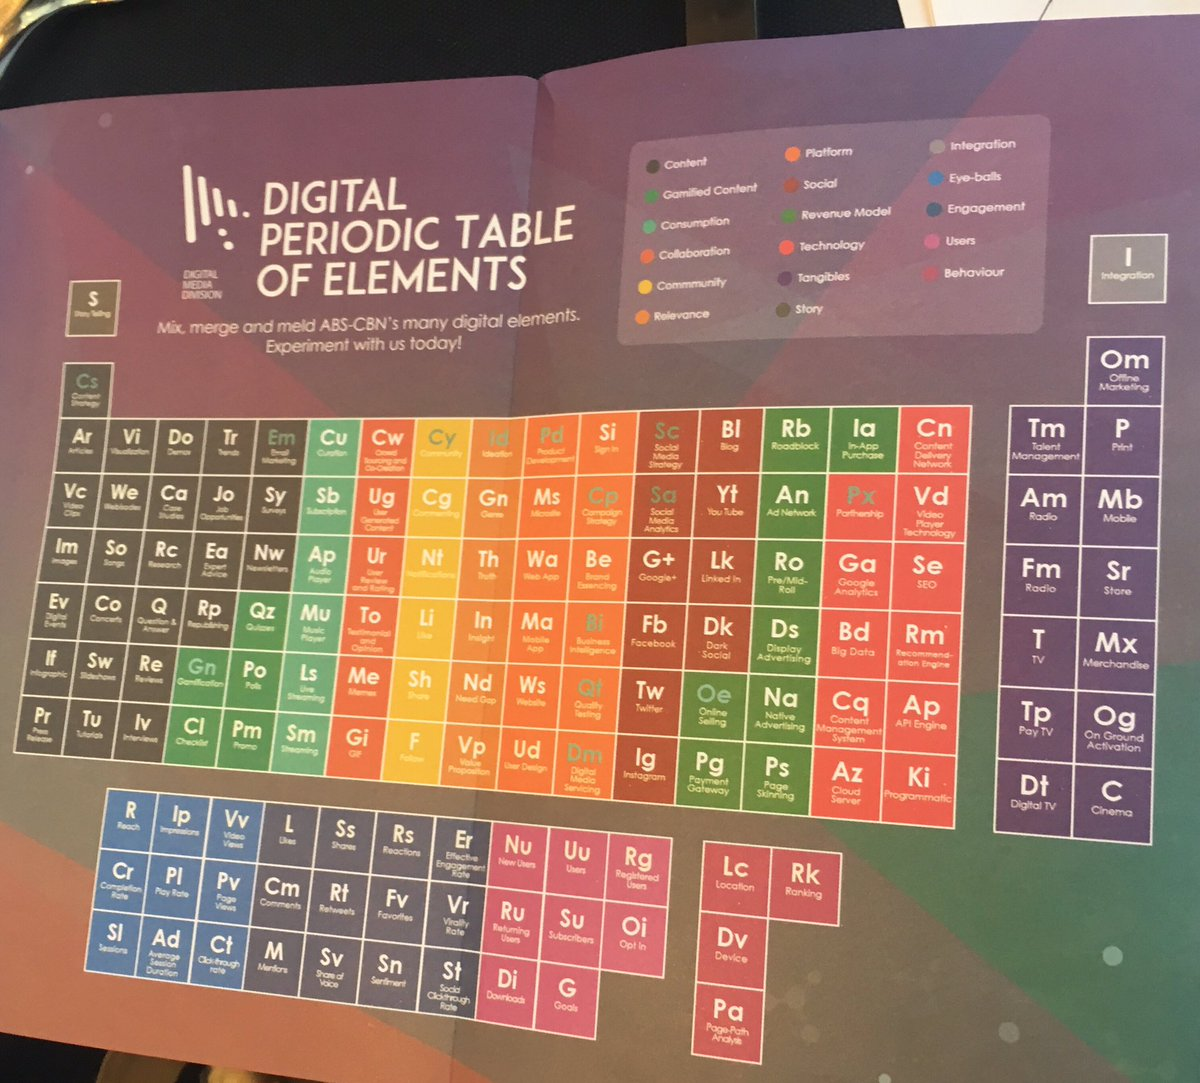 Louella desiderio on twitter abs cbn rolls out digital periodic louella desiderio on twitter abs cbn rolls out digital periodic table of elements to guide advertisers in digital campaigns gamestrikefo Choice Image